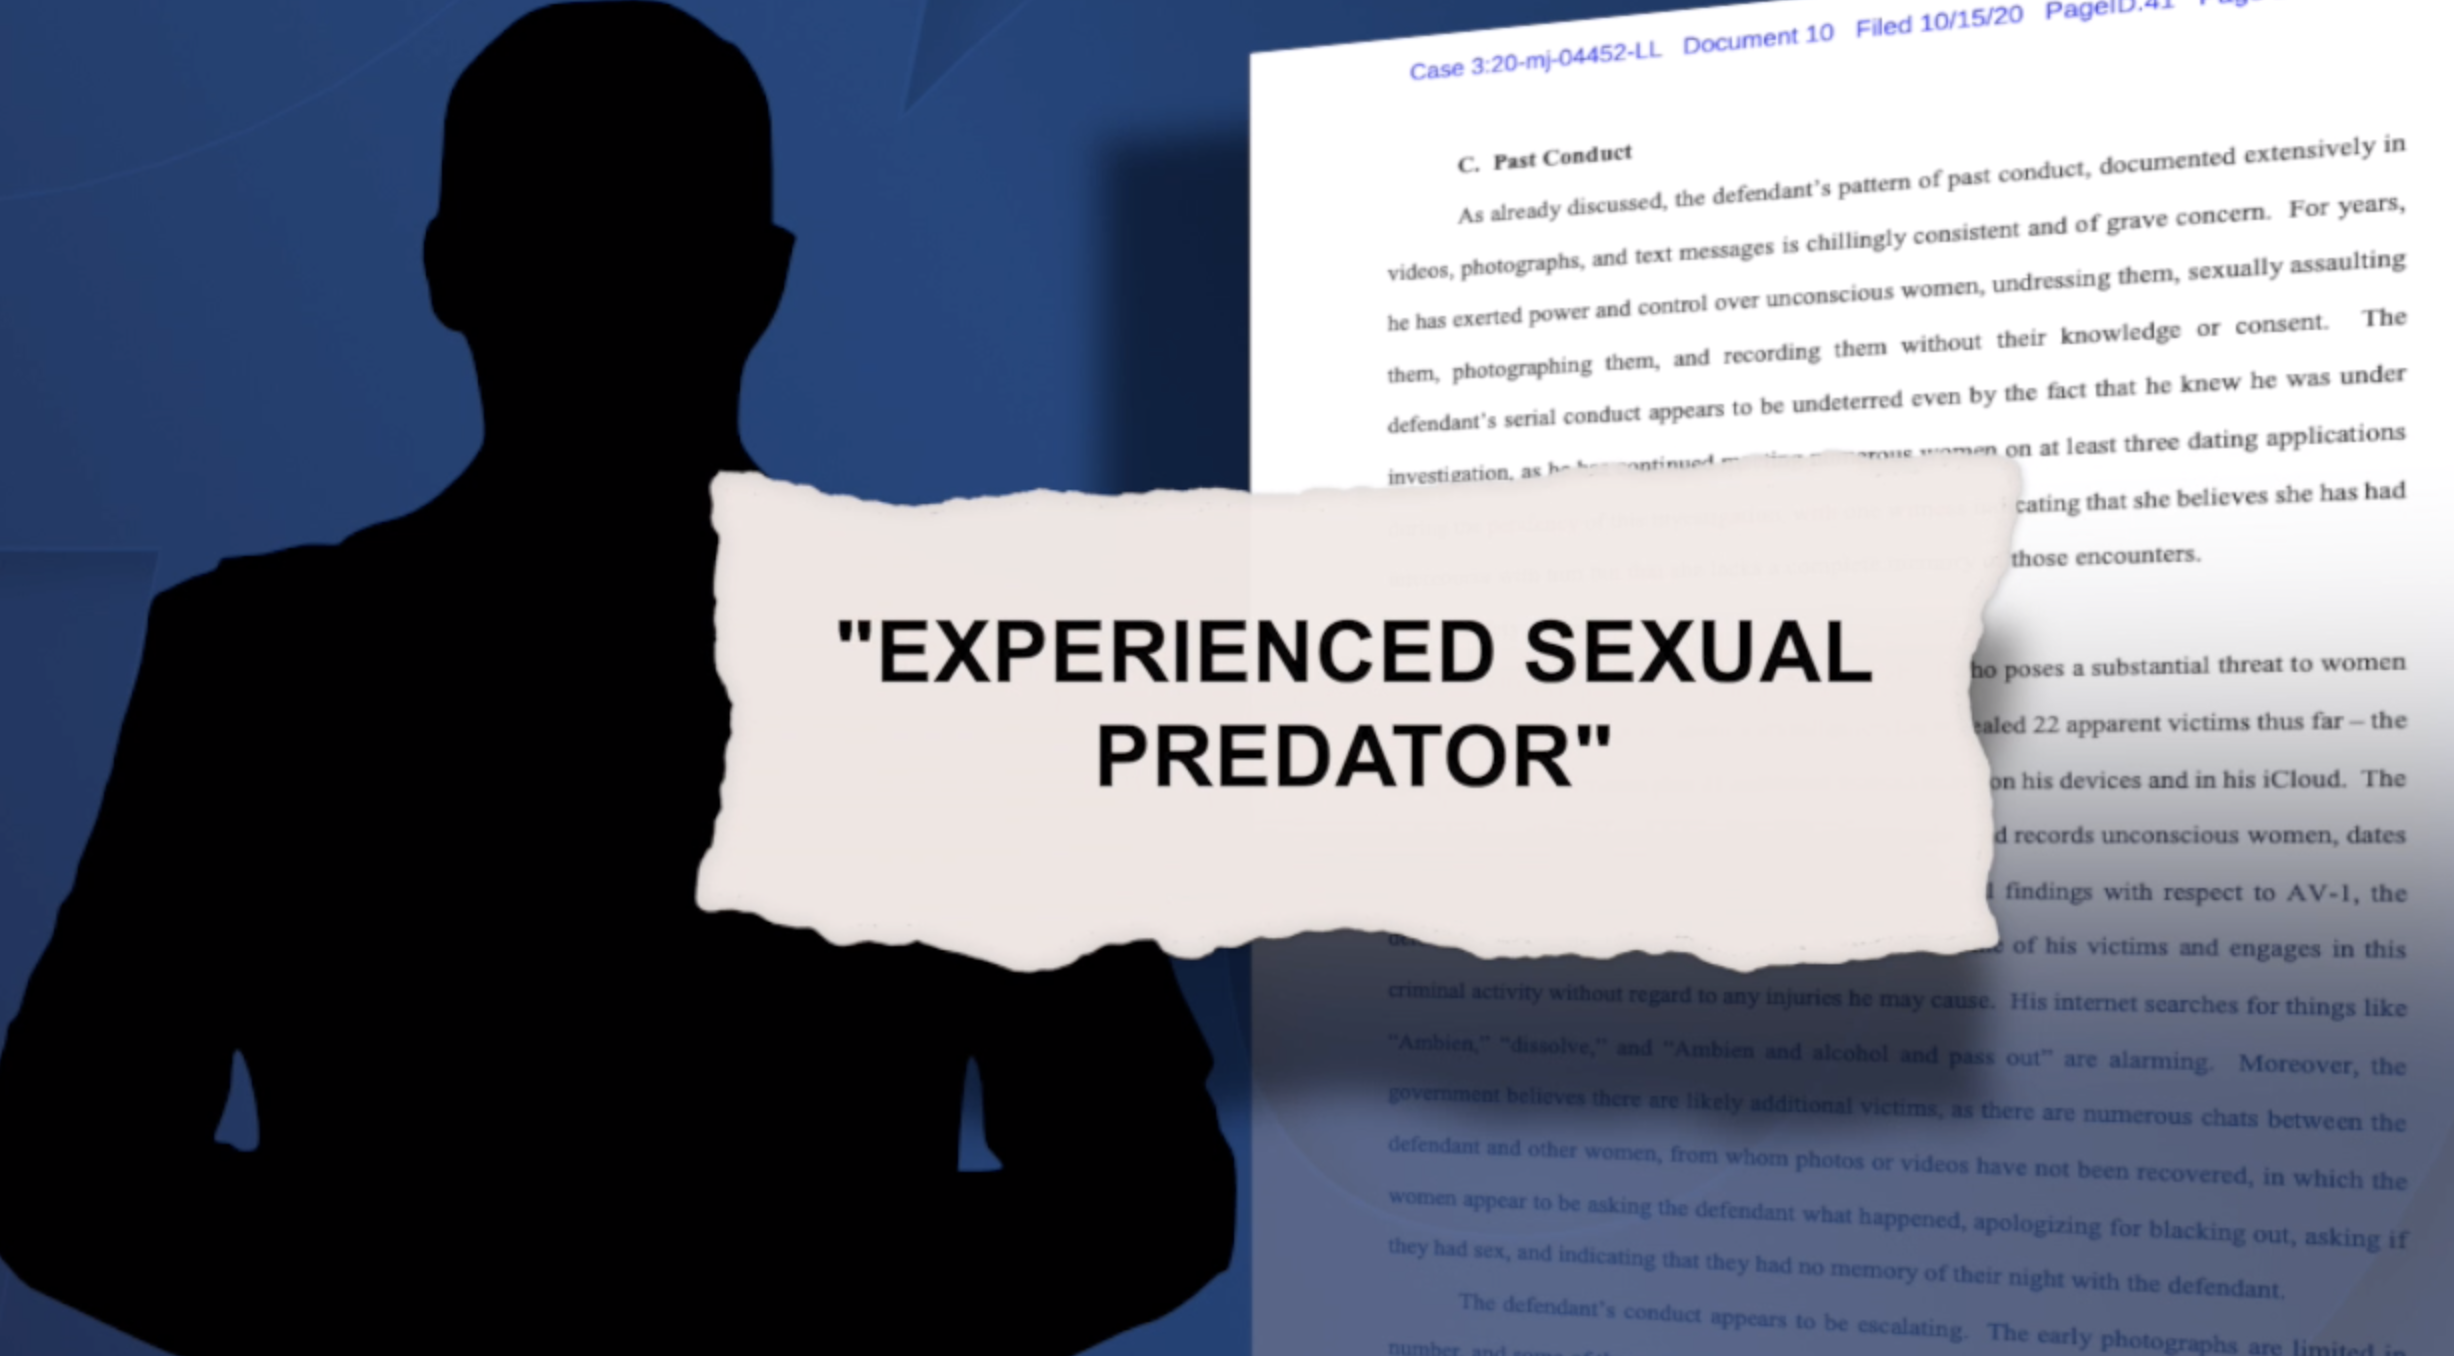 Government employee with SD ties accused of assaulting 20+ women